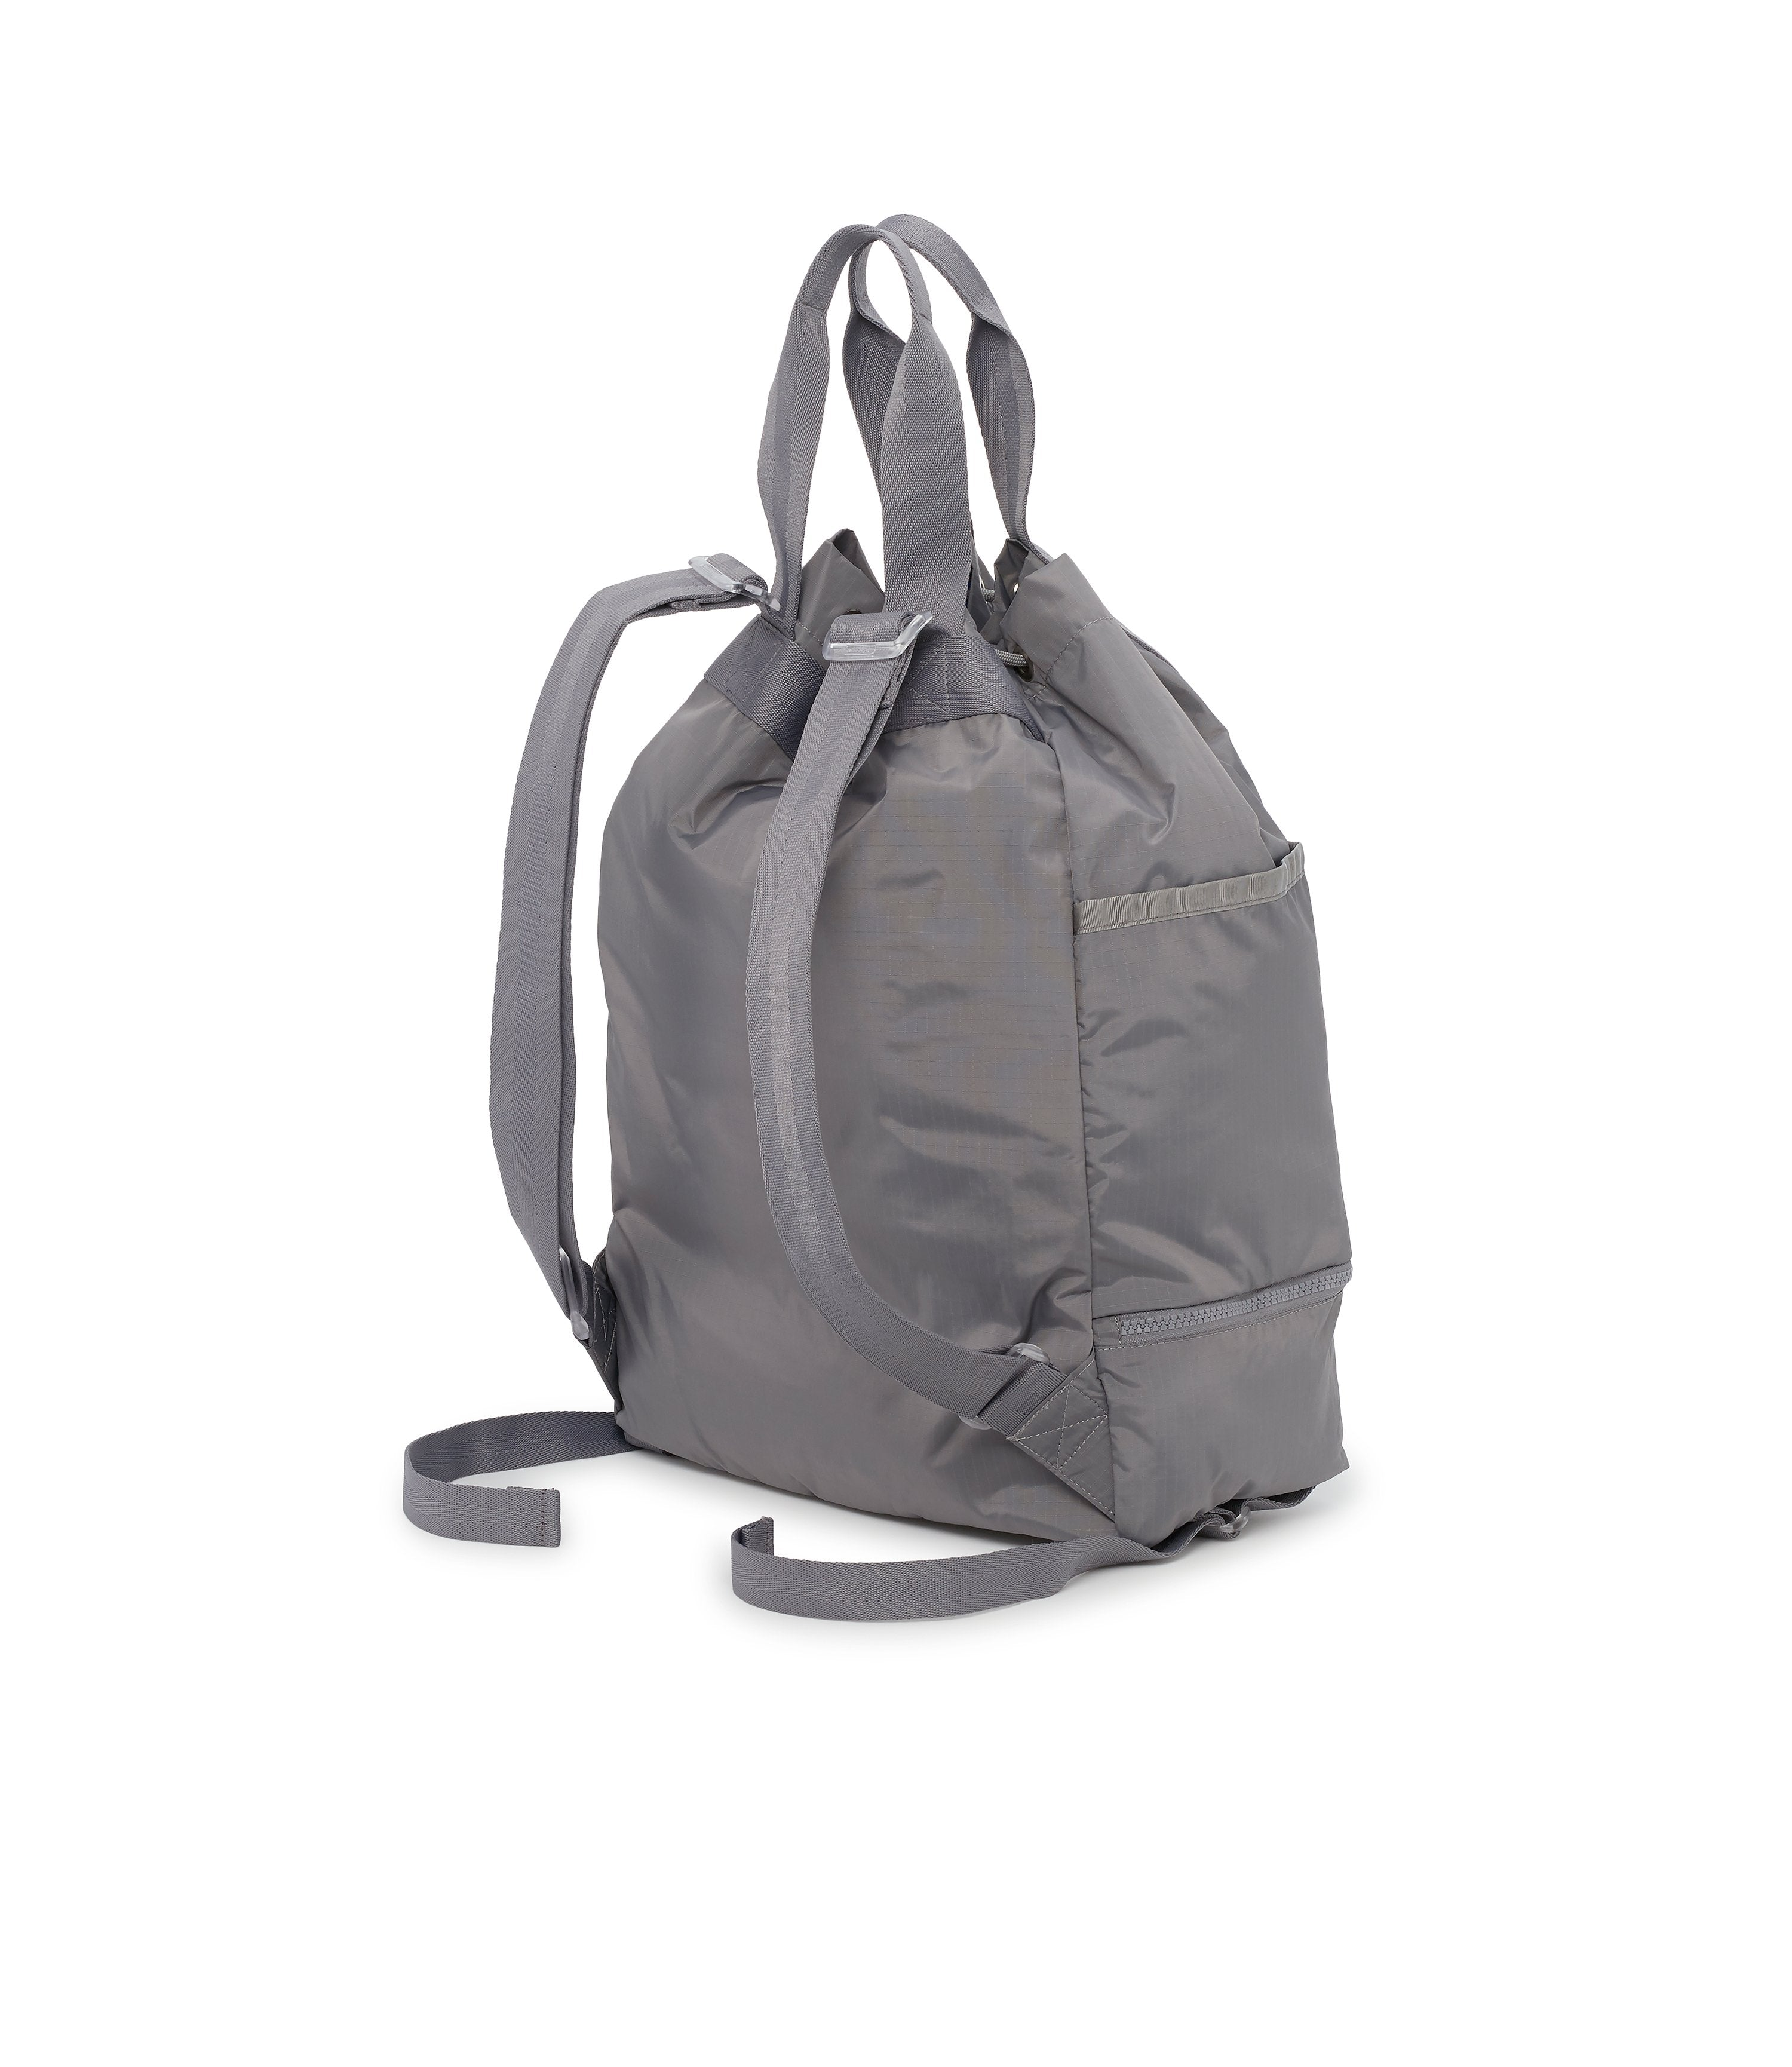 Active Backpack, Back Image, Backpack Straps, Handle Straps, Gray